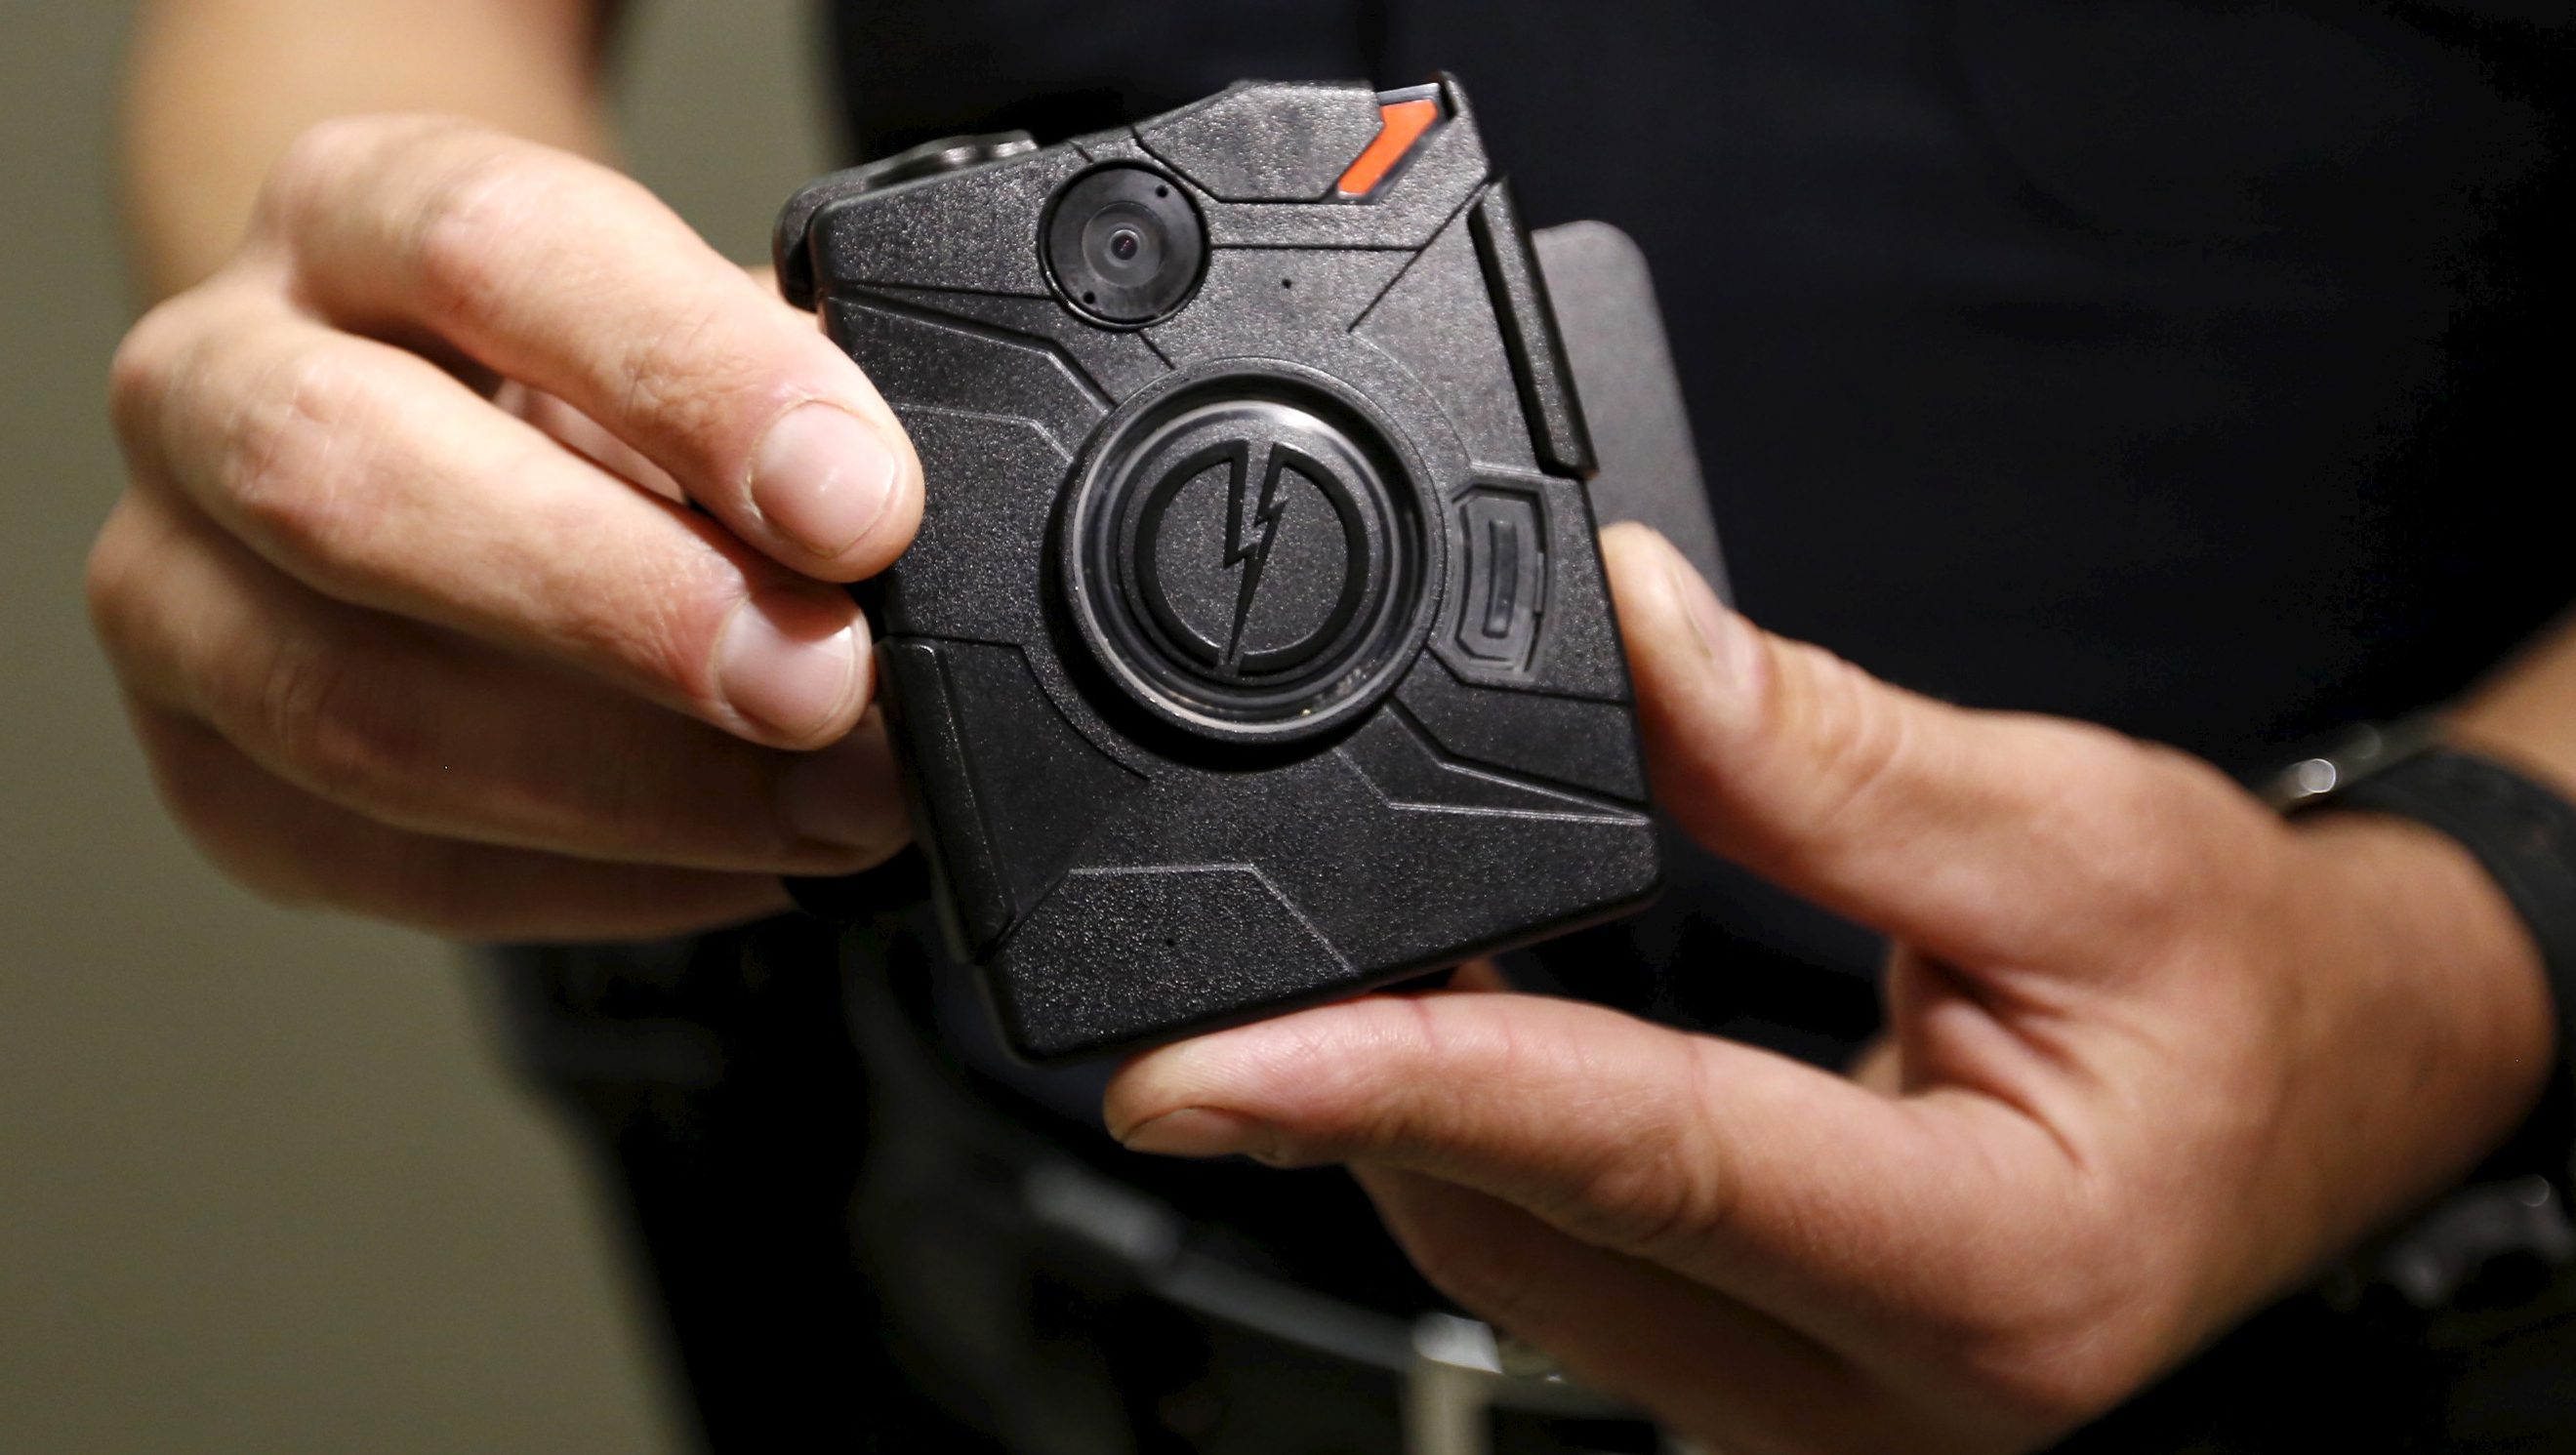 Los Angeles Police Department (LAPD) information technology bureau officer Jim Stover displays the new body cameras to be used by the LAPD in Los Angeles, California August 31, 2015.  REUTERS/Al Seib/Pool/Files - RTSPIMO